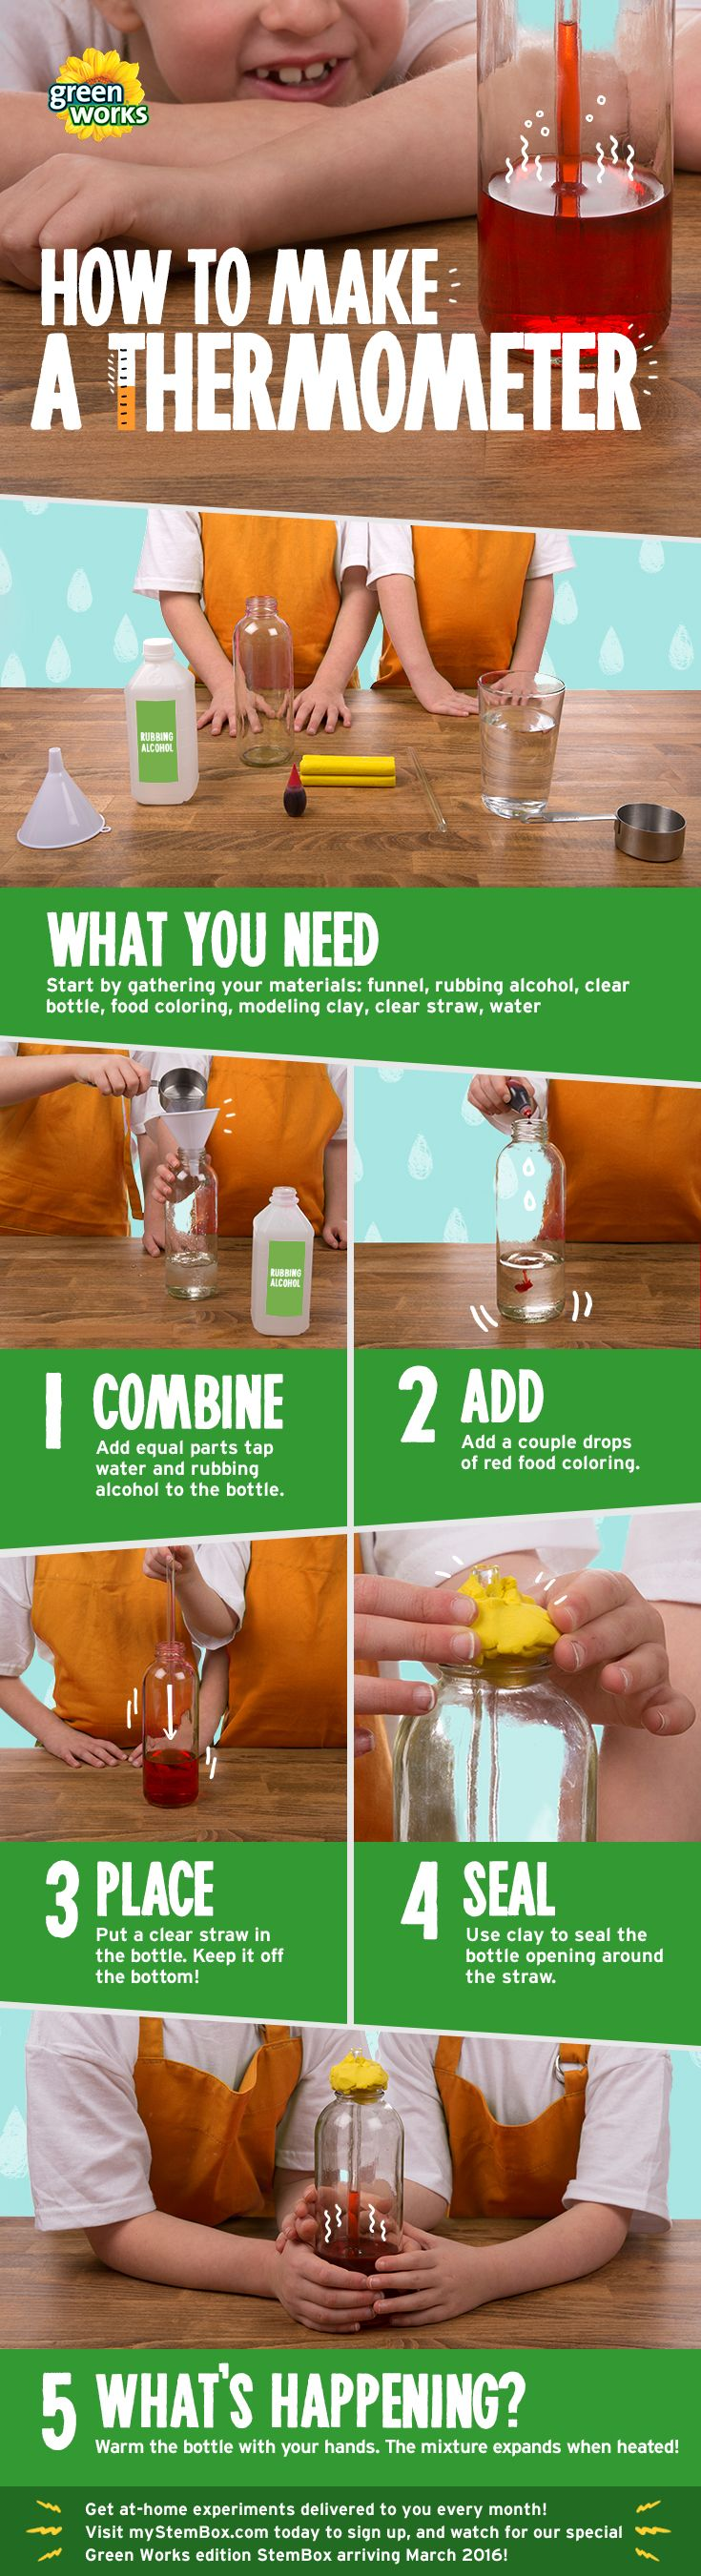 First gather your materials: 1 plastic bottle, water, rubbing alcohol, food coloring, 1 clear straw, and modeling clay. Start by adding equal parts tap water and rubbing alcohol to fill the bottle a ¼ way up. Then, add a few drops of red food coloring. Place the straw into the bottle but make sure it doesn't touch the bottom. Seal the bottle with clay around the straw, but don't cover the straw. Now to test it! Heat the mixture with your hands and watch the liquid expand up into the straw!